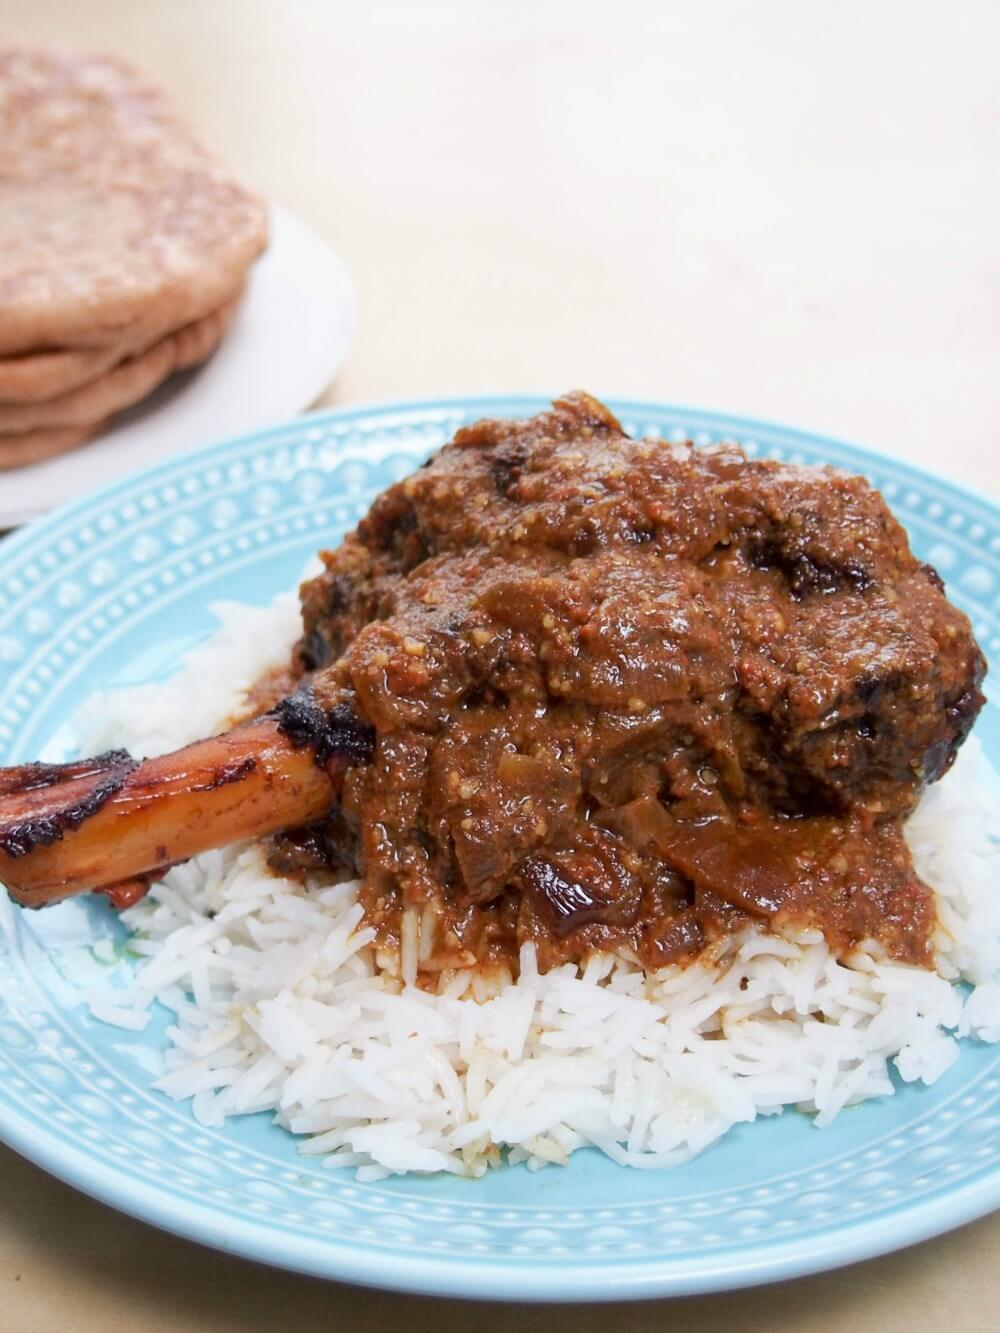 Slow cooker lamb rogan josh (using lamb shanks)